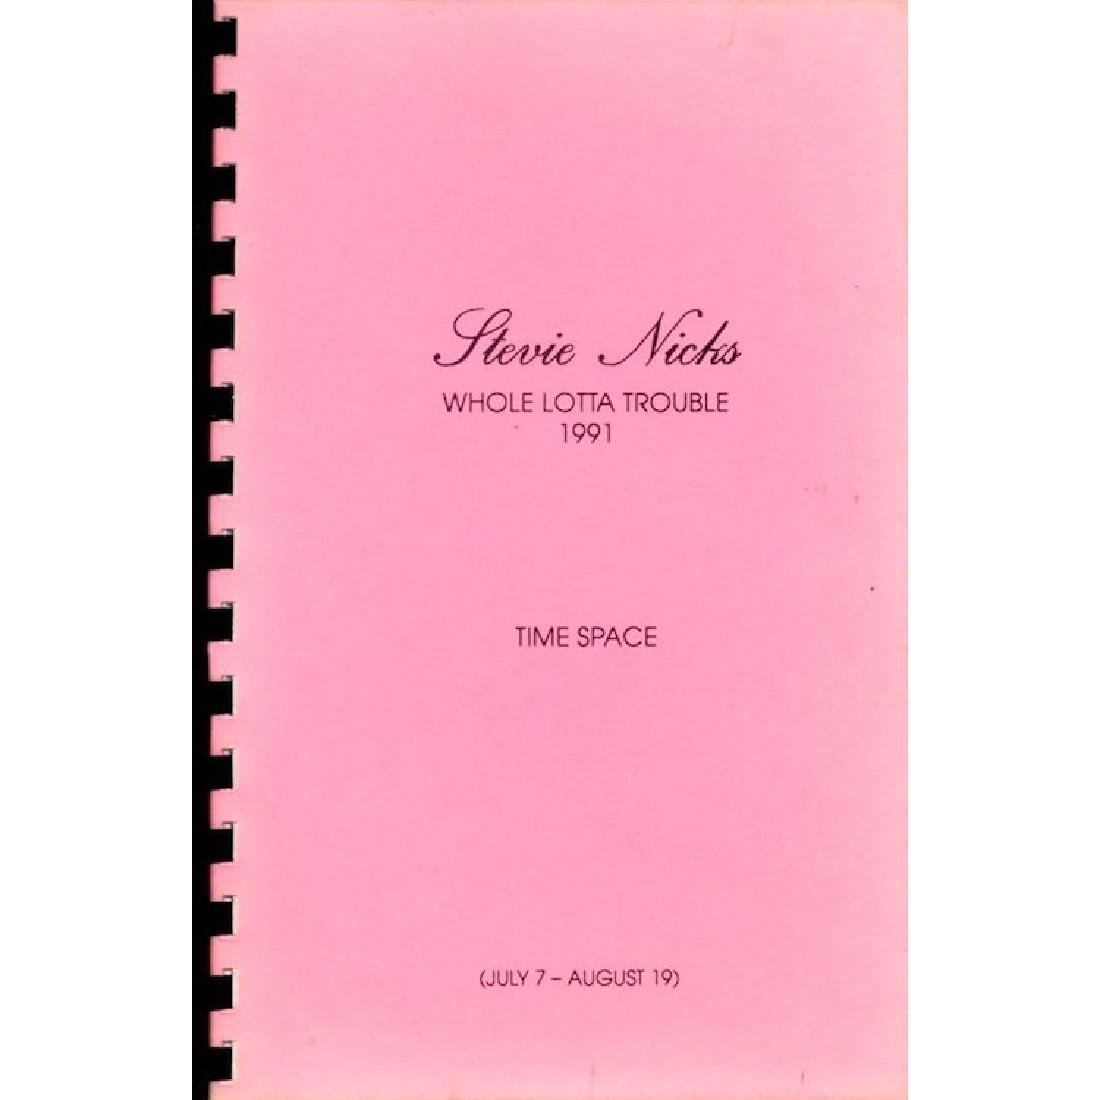 Stevie Nicks - Whole Lotta Trouble - Itinerary Book